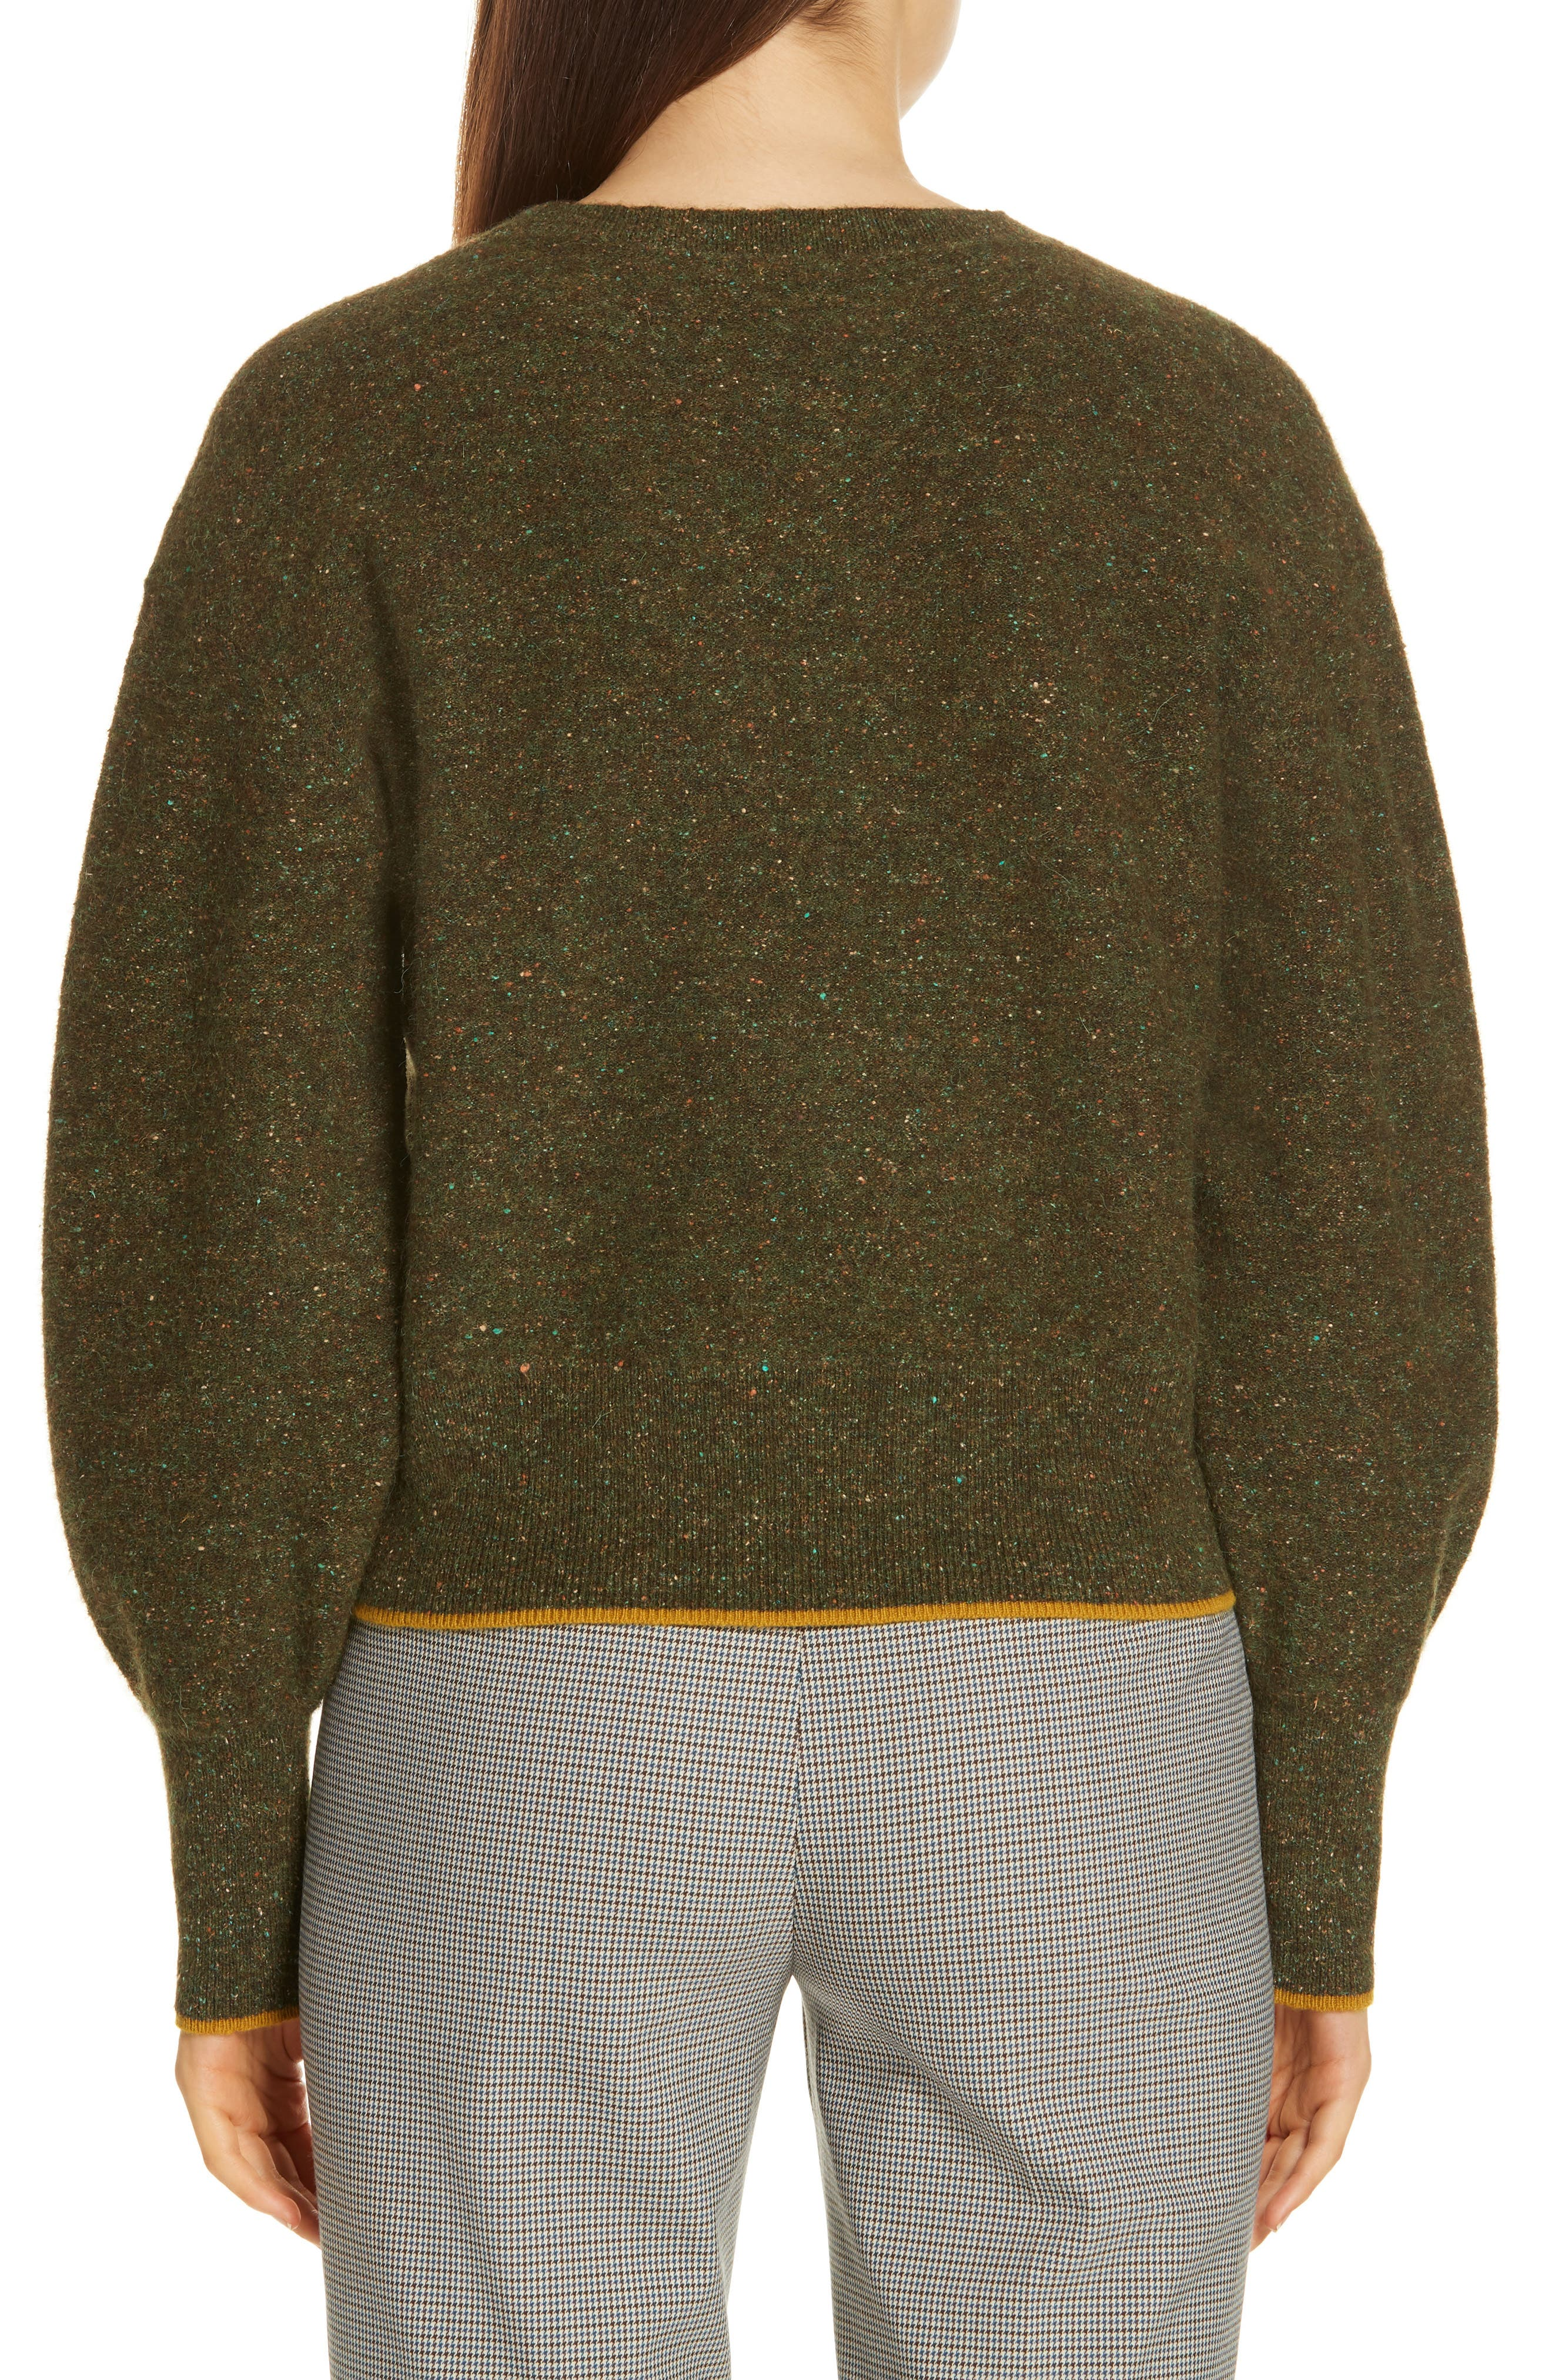 Tweed Knit Sweater,                             Alternate thumbnail 2, color,                             310